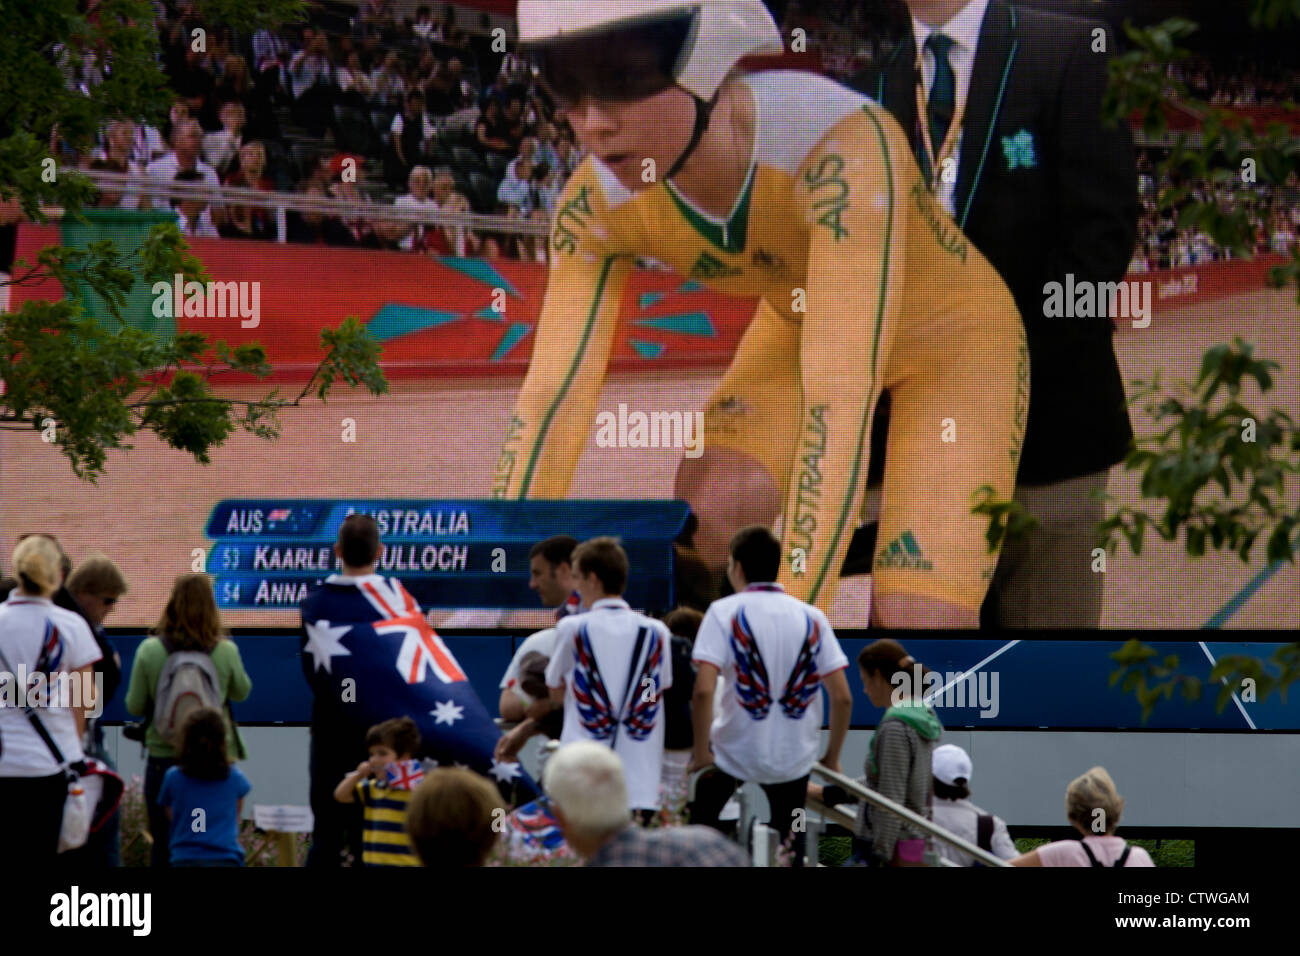 A lone Australian spectator with the national flag on the person's back in the Olympic Park, near the Velodrome, - Stock Image